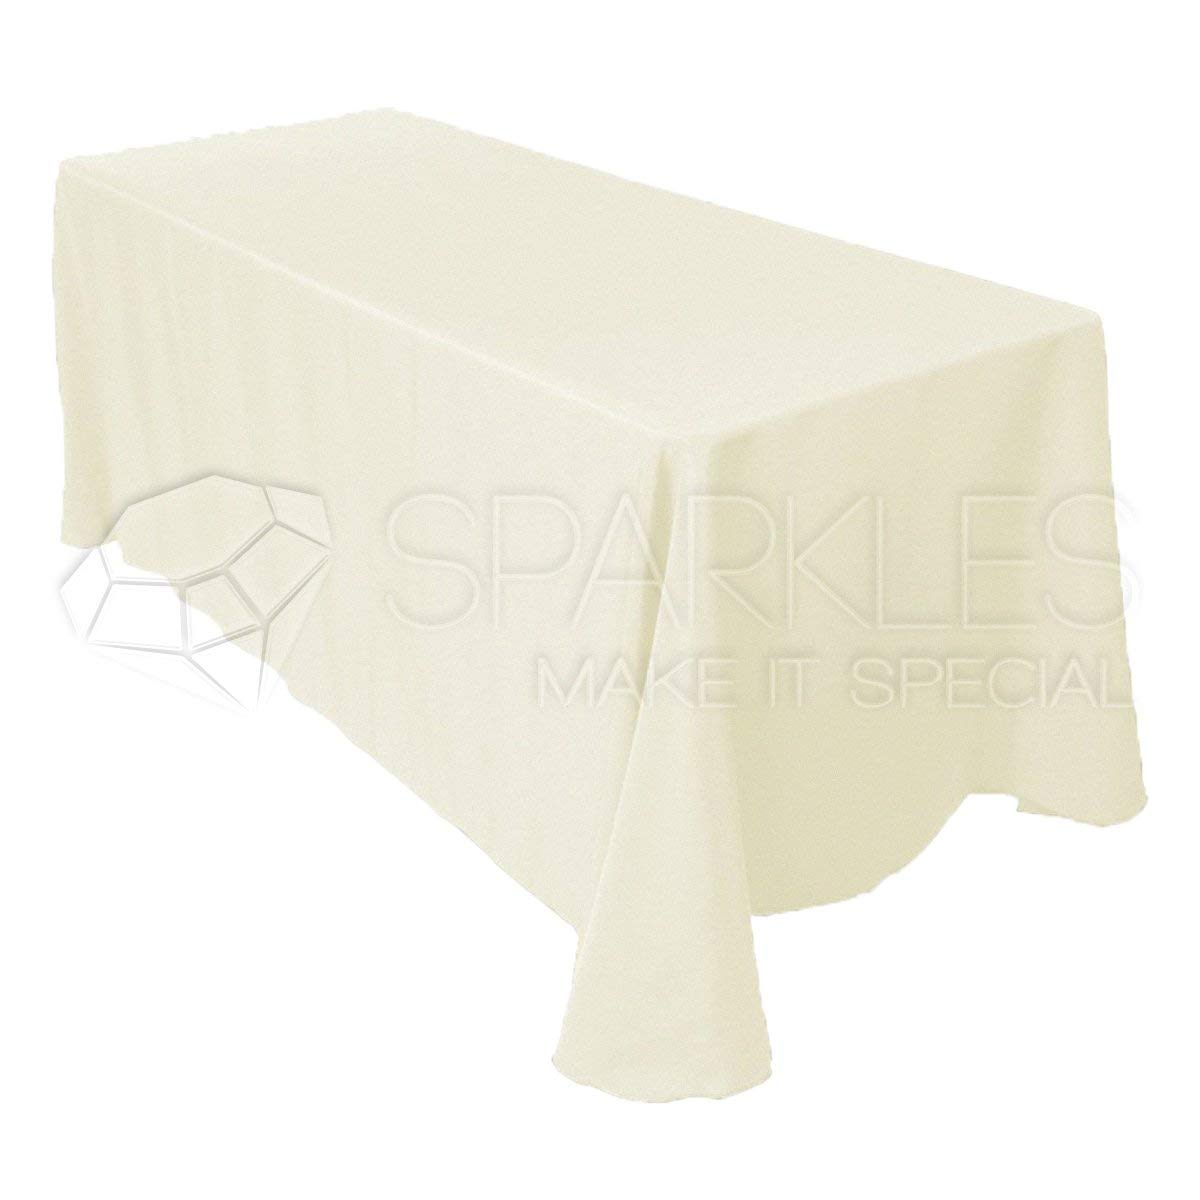 "Sparkles Make It Special 10-pcs 90"" x 156"" Inch Rectangular Polyester Cloth Fabric Linen Tablecloth - Wedding Reception Restaurant Banquet Party - Machine Washable - Choice of Color - Ivory"